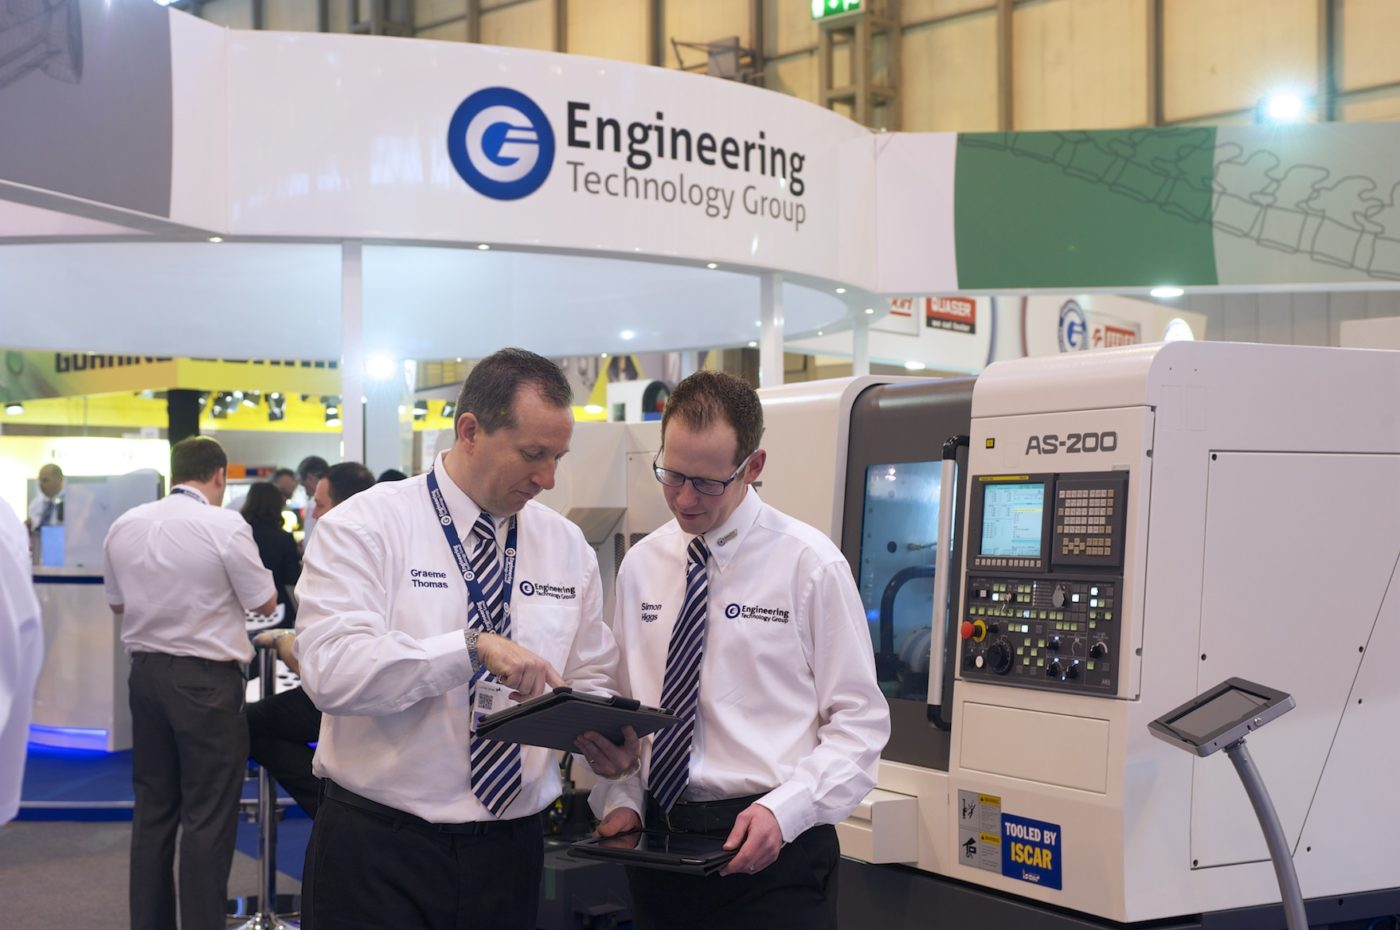 Engineering Technology Group at MACH 2014